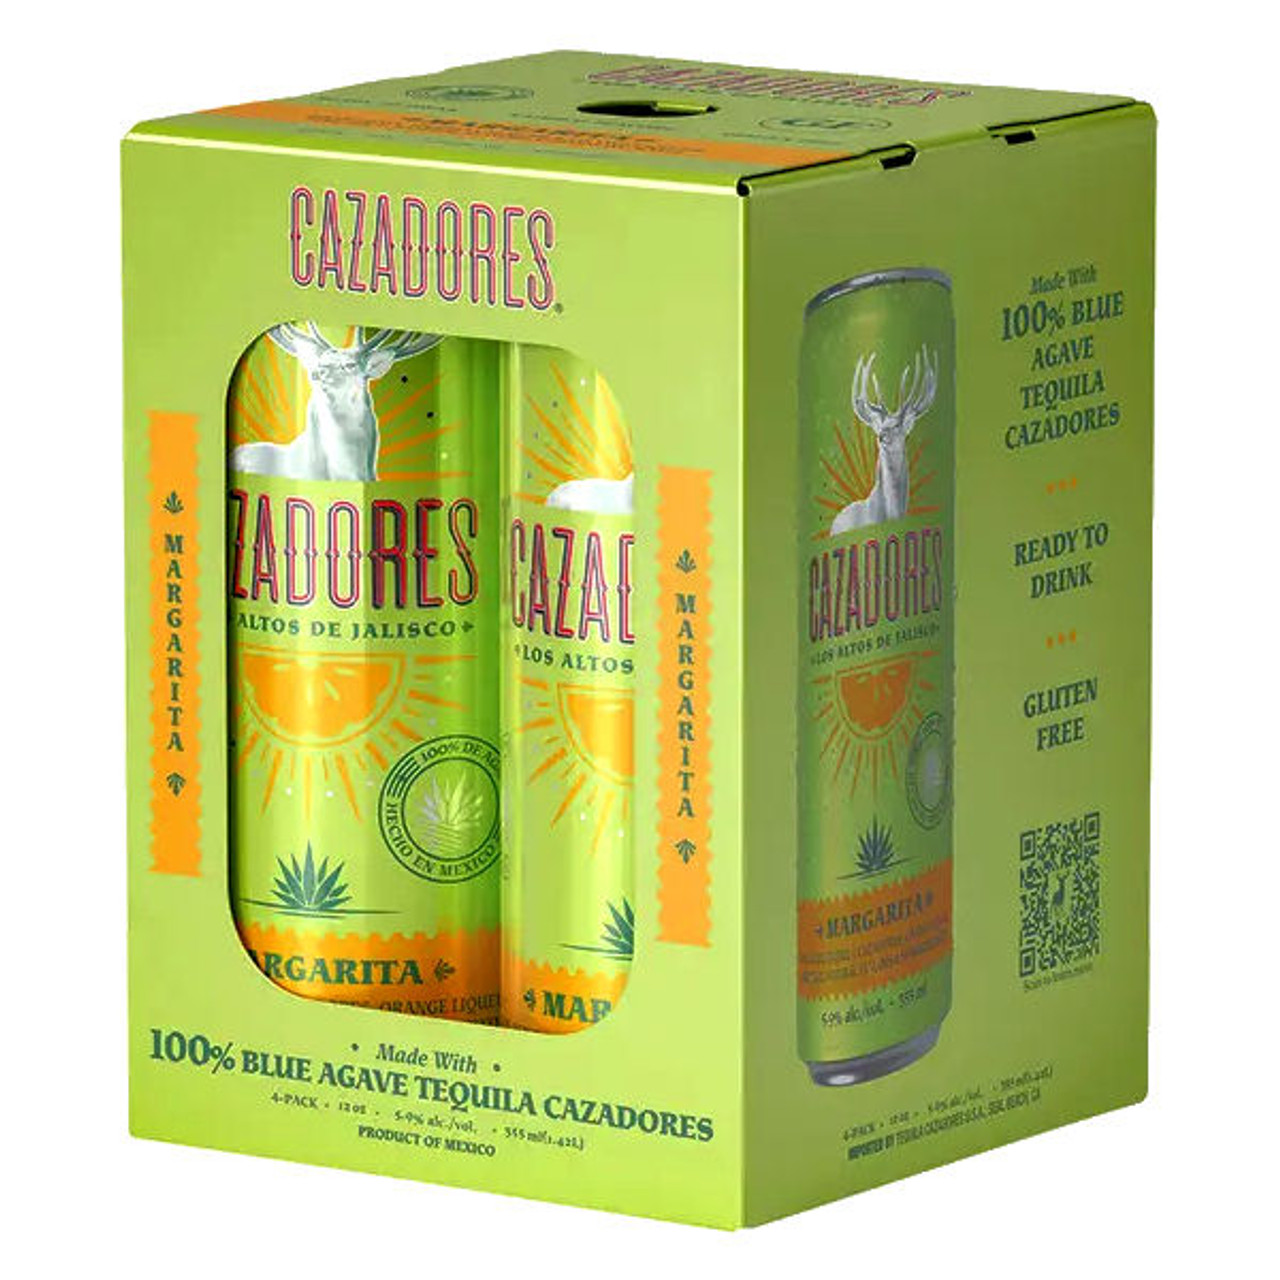 Cazadores Tequila Margarita Cocktail Ready-To-Drink 4-Pack 12oz Cans